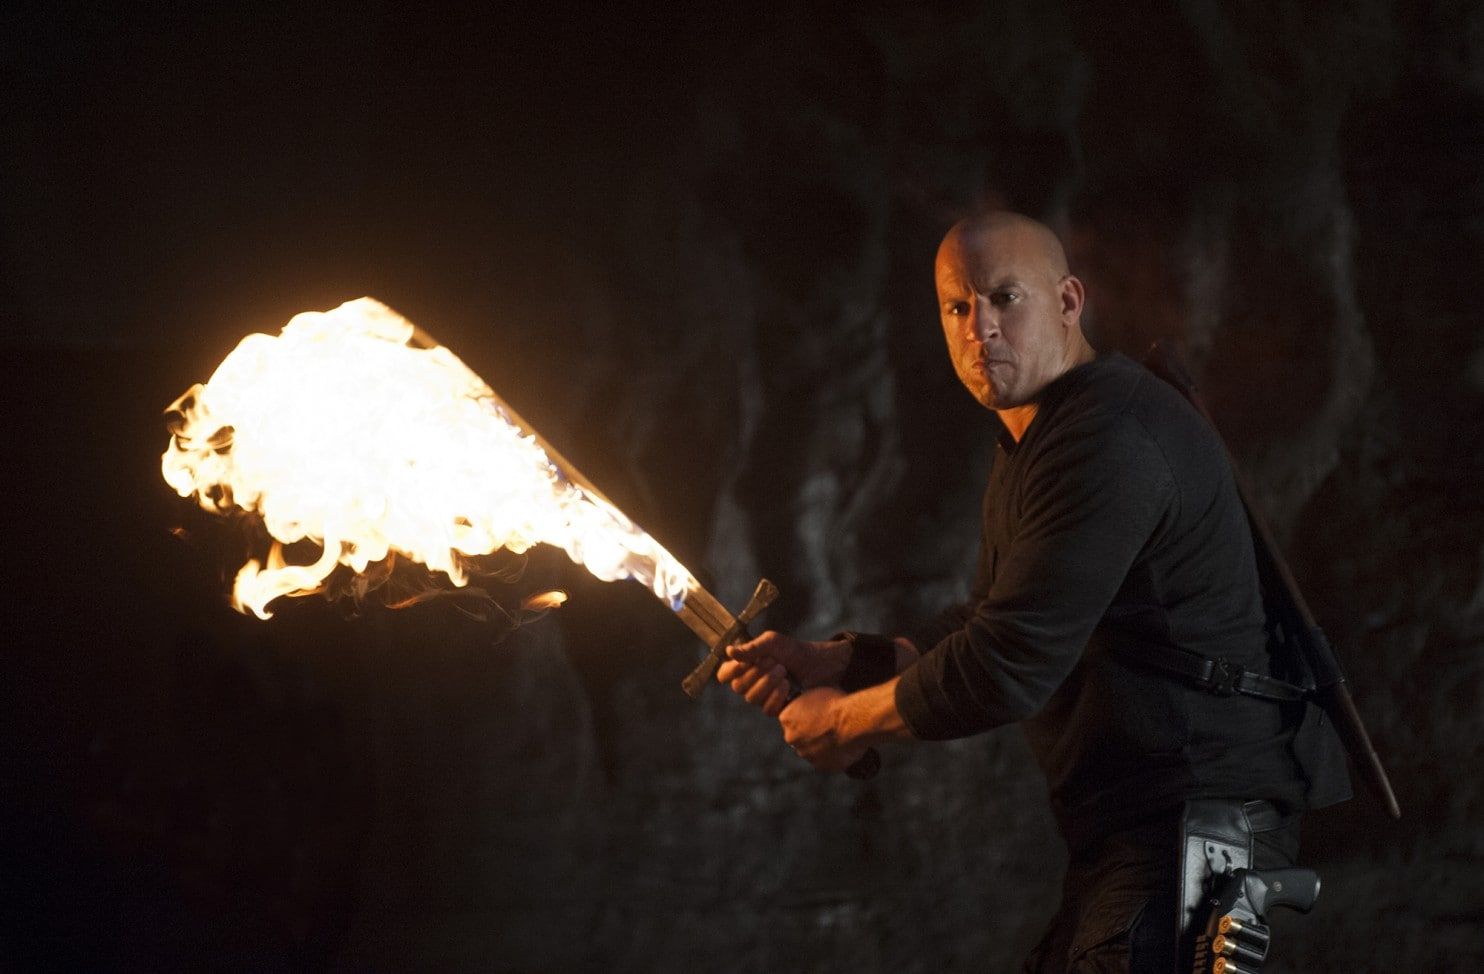 Vin Diesel as the witch hunter Kaulder in The Last Witch Hunter (2015)